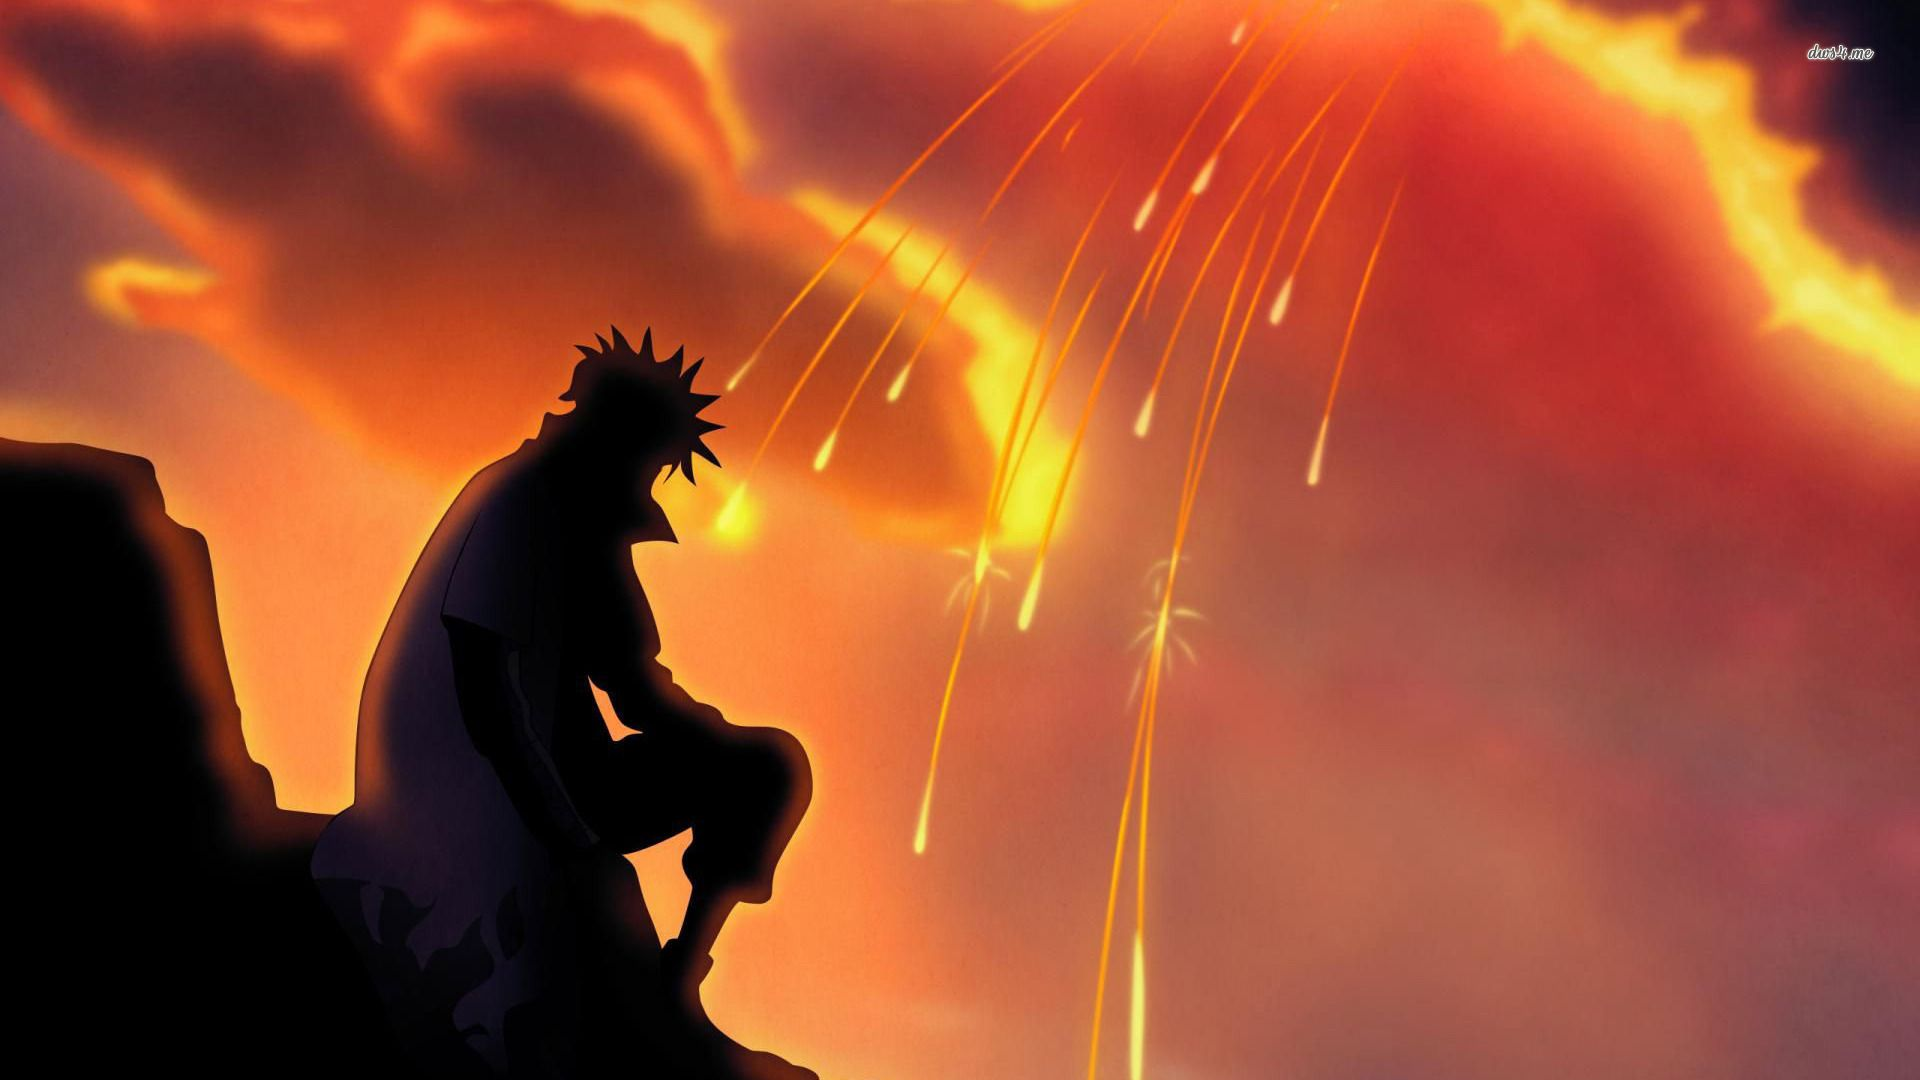 Imagenes de naruto shippuden wallpapers 49 wallpapers - Image de narouto ...